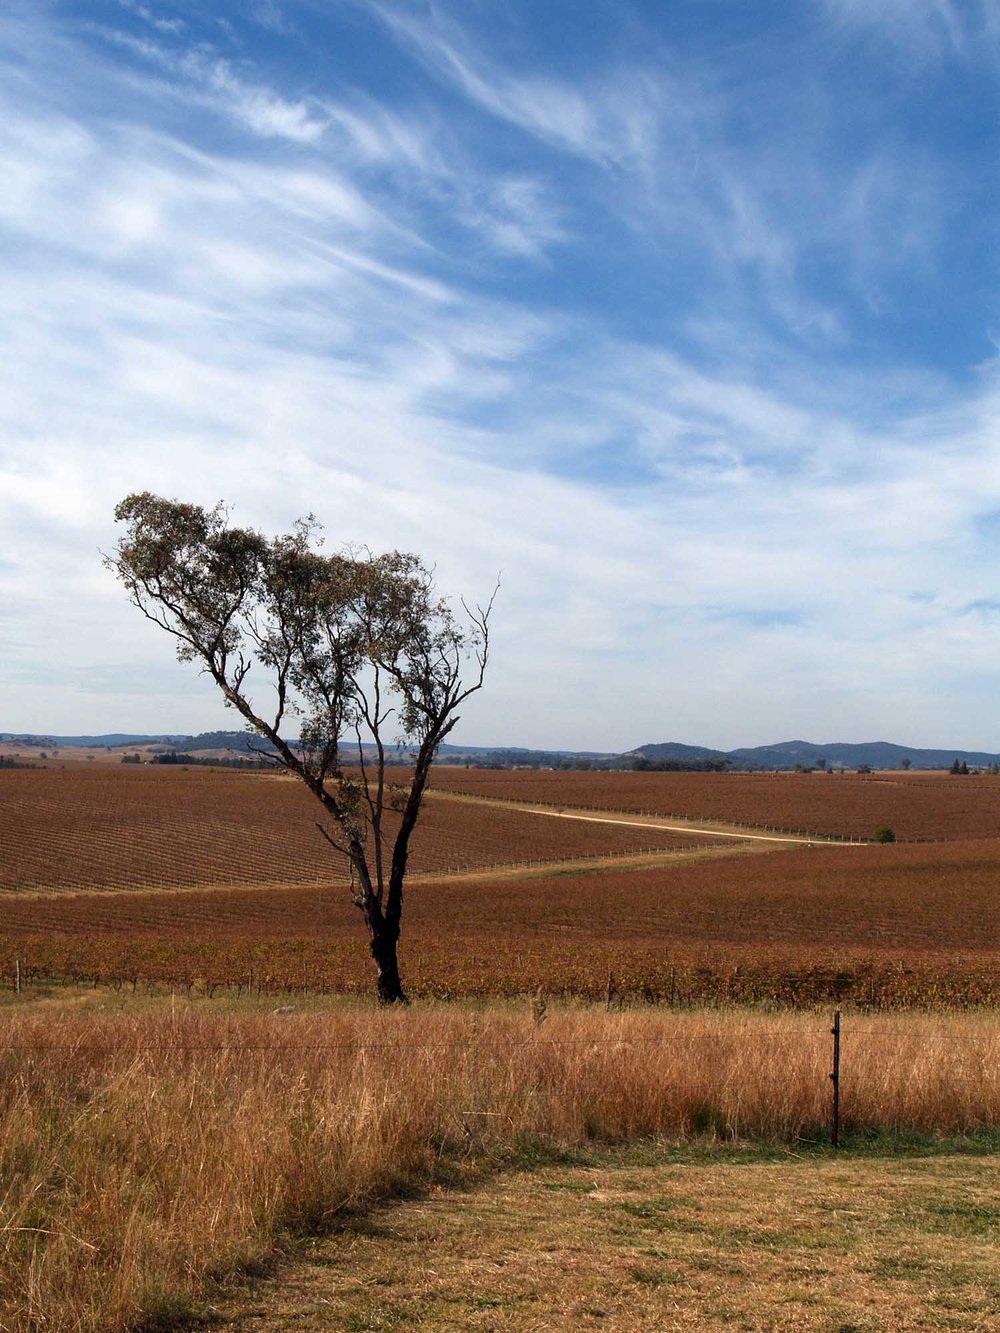 A lone eucalyptus tree in Orange wine country, New South Wales, Australia.